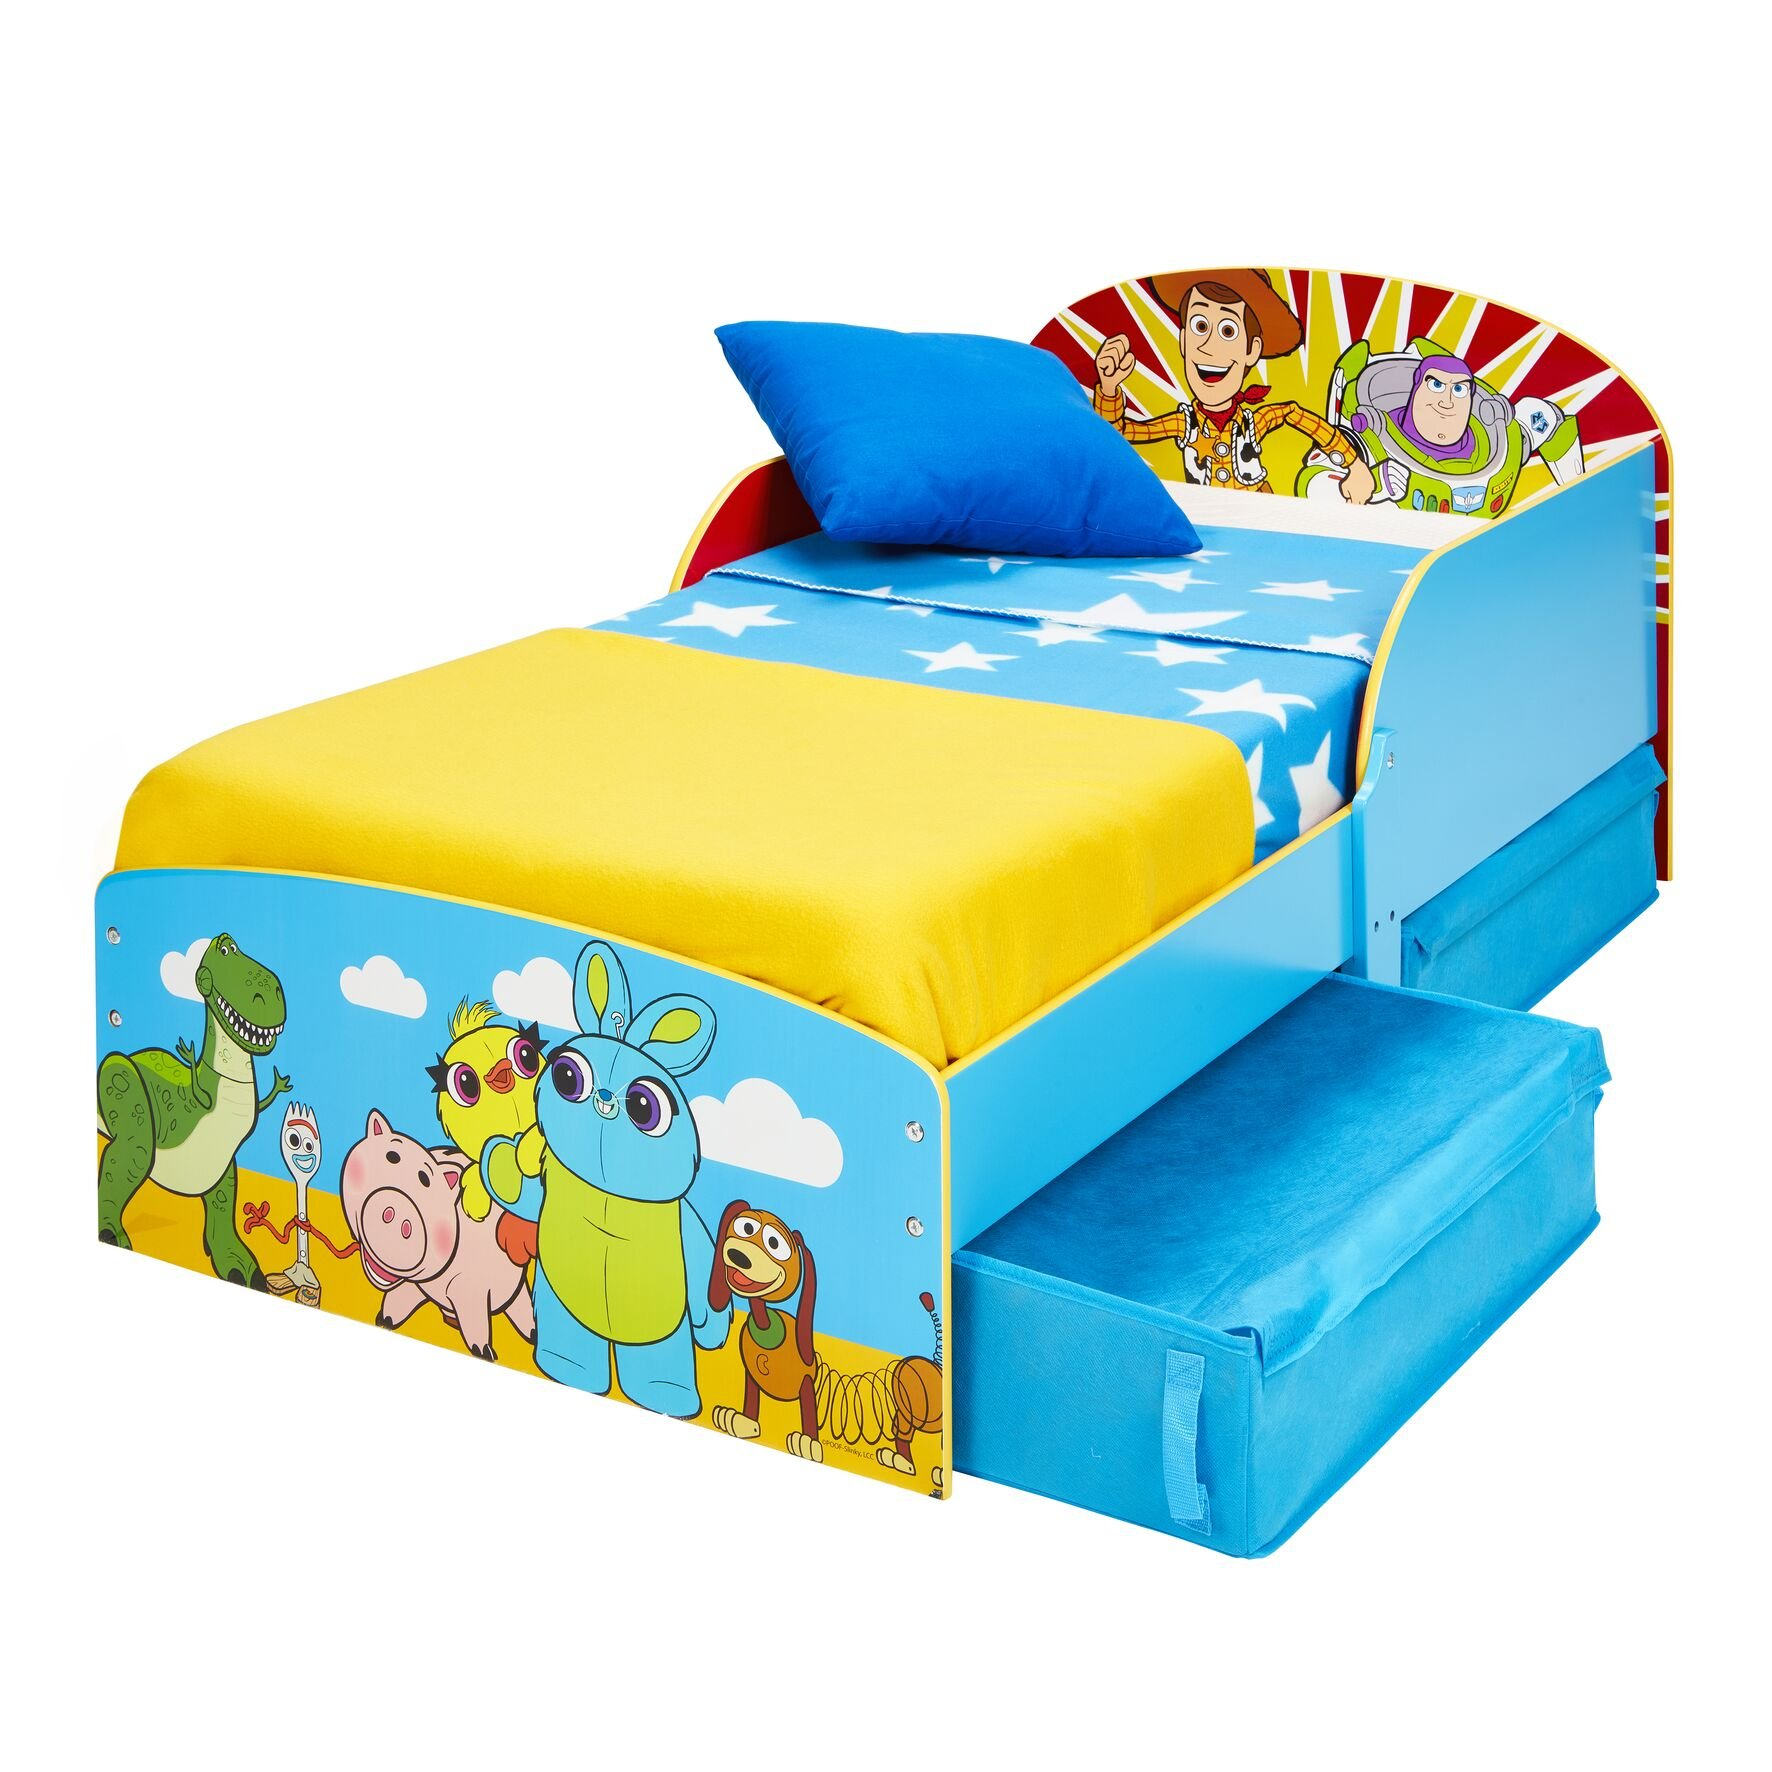 Toy Story - 4 Kids Toddler Bed with Storage (516TYY01EM)